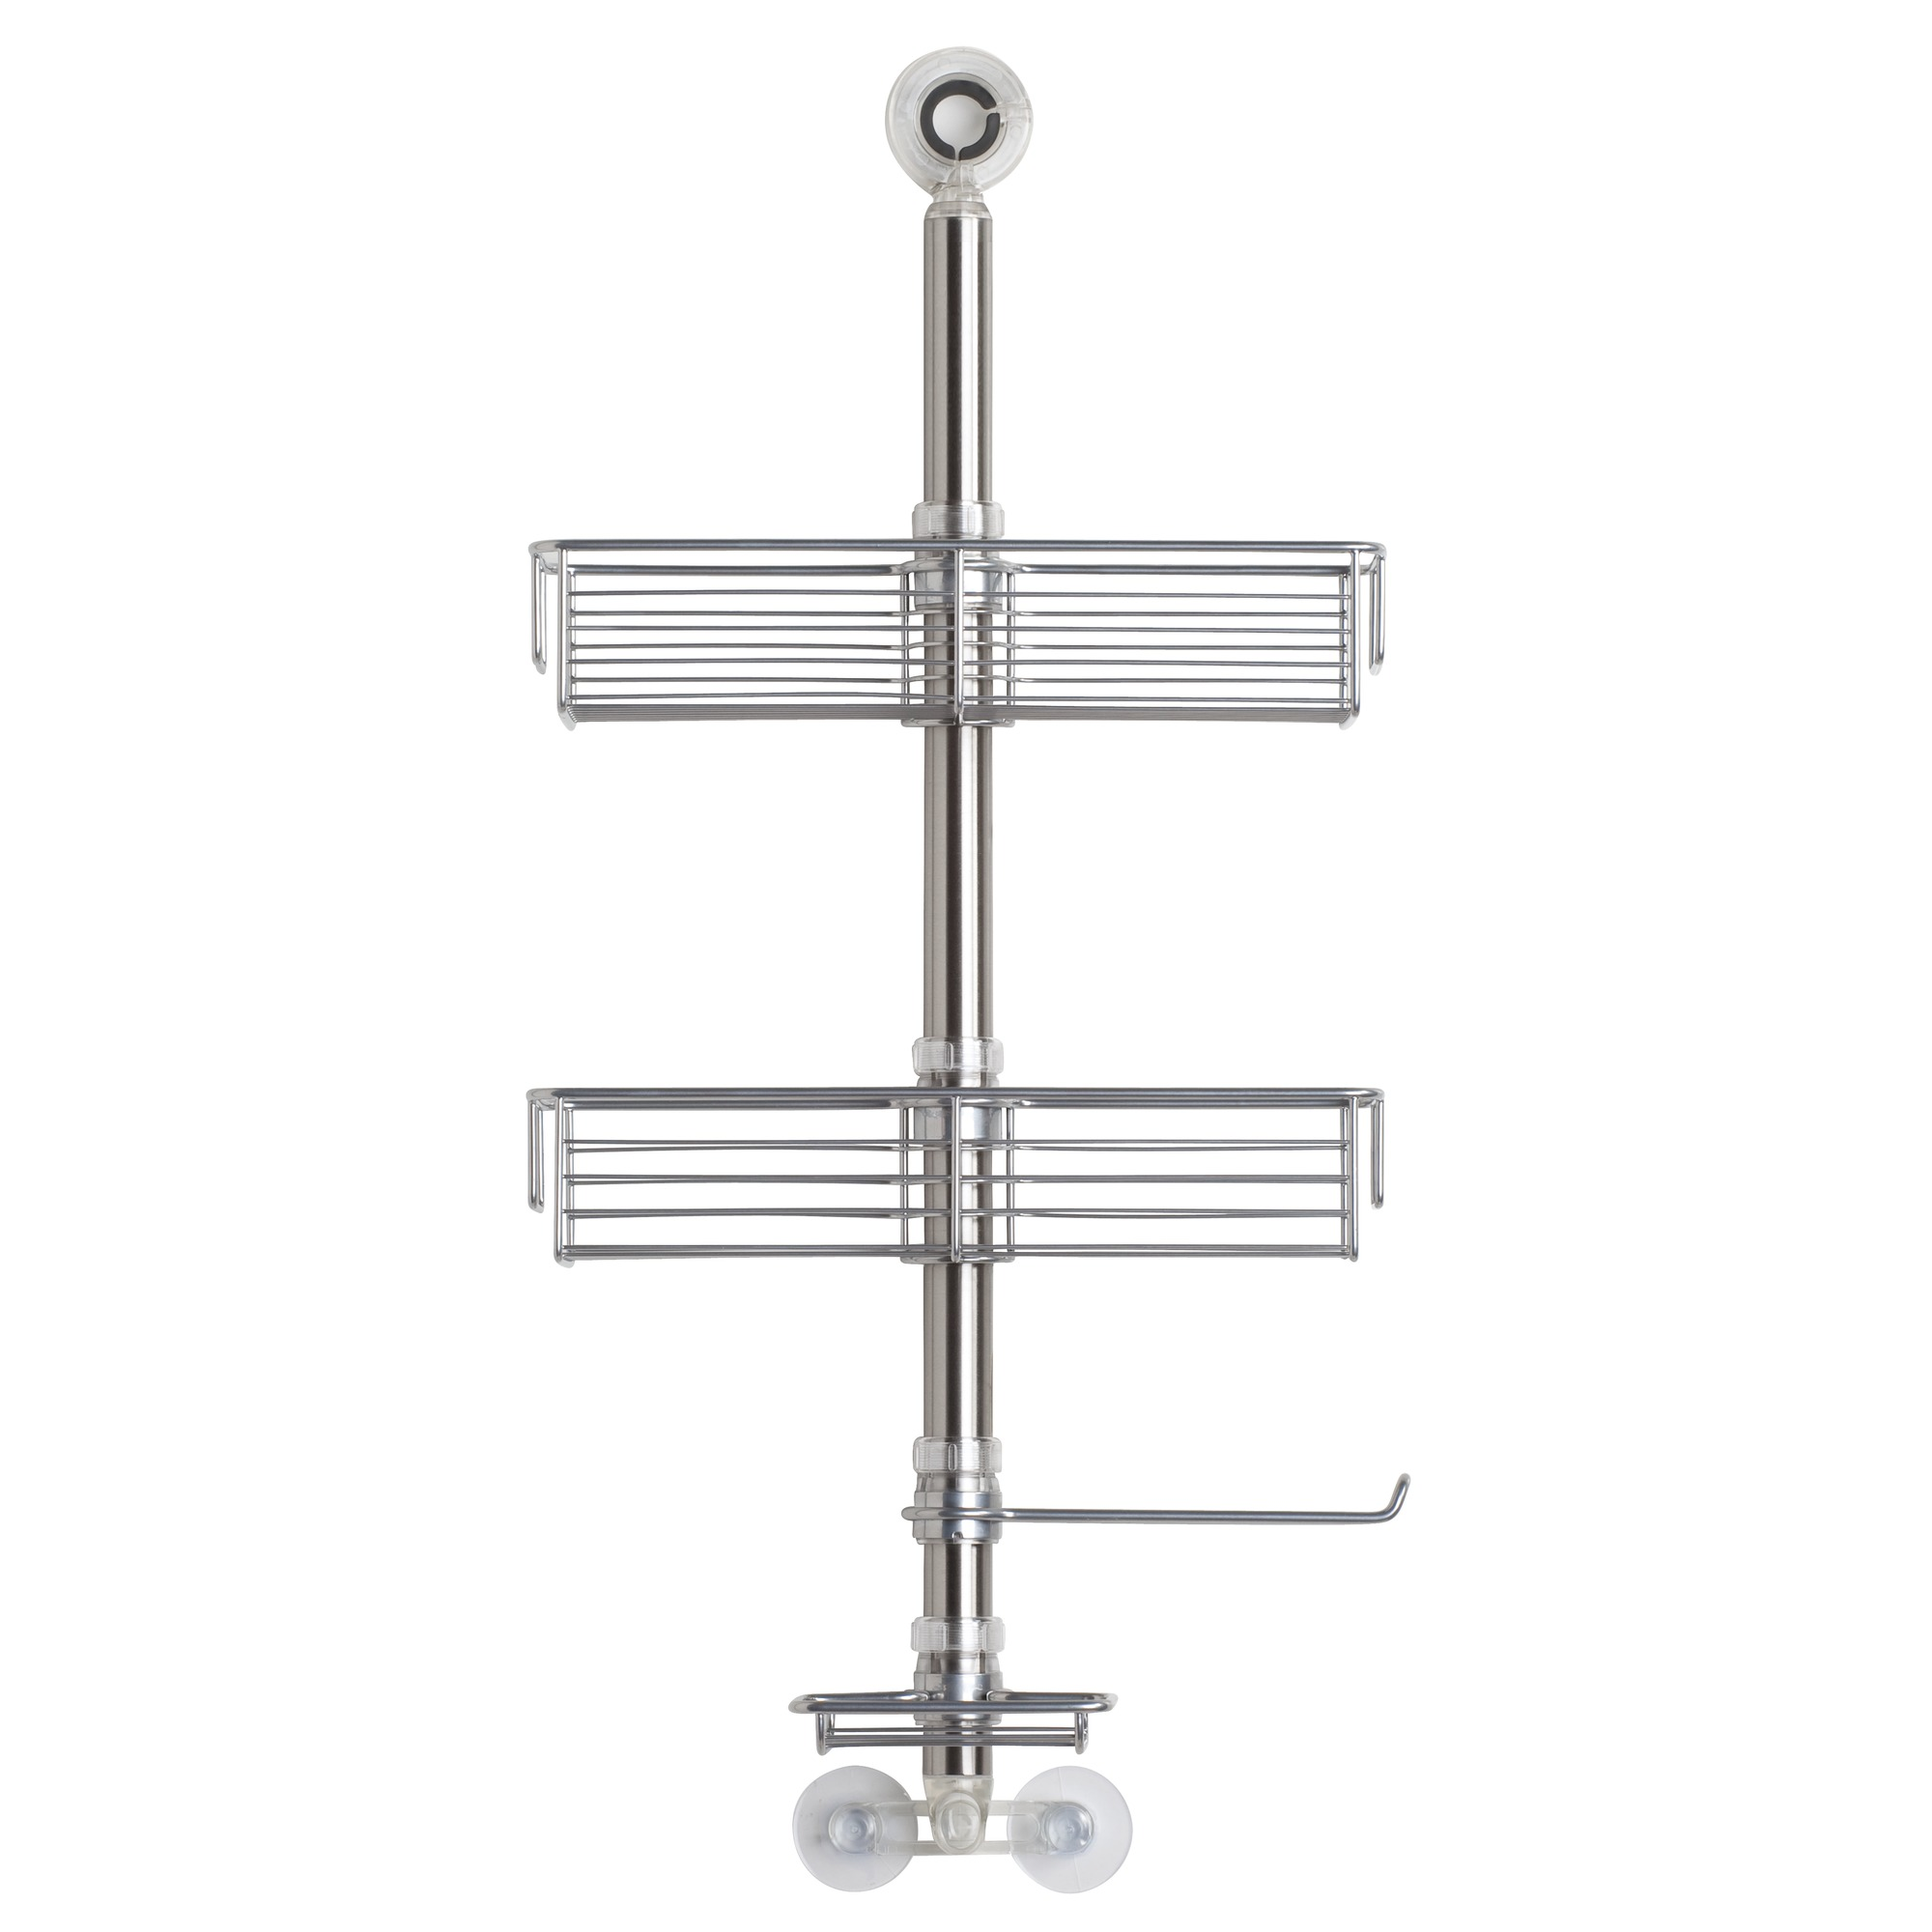 InterDesign Forma Brushed Stainless Steel Shower Caddy with 2 Tiers, Silver by INTERDESIGN